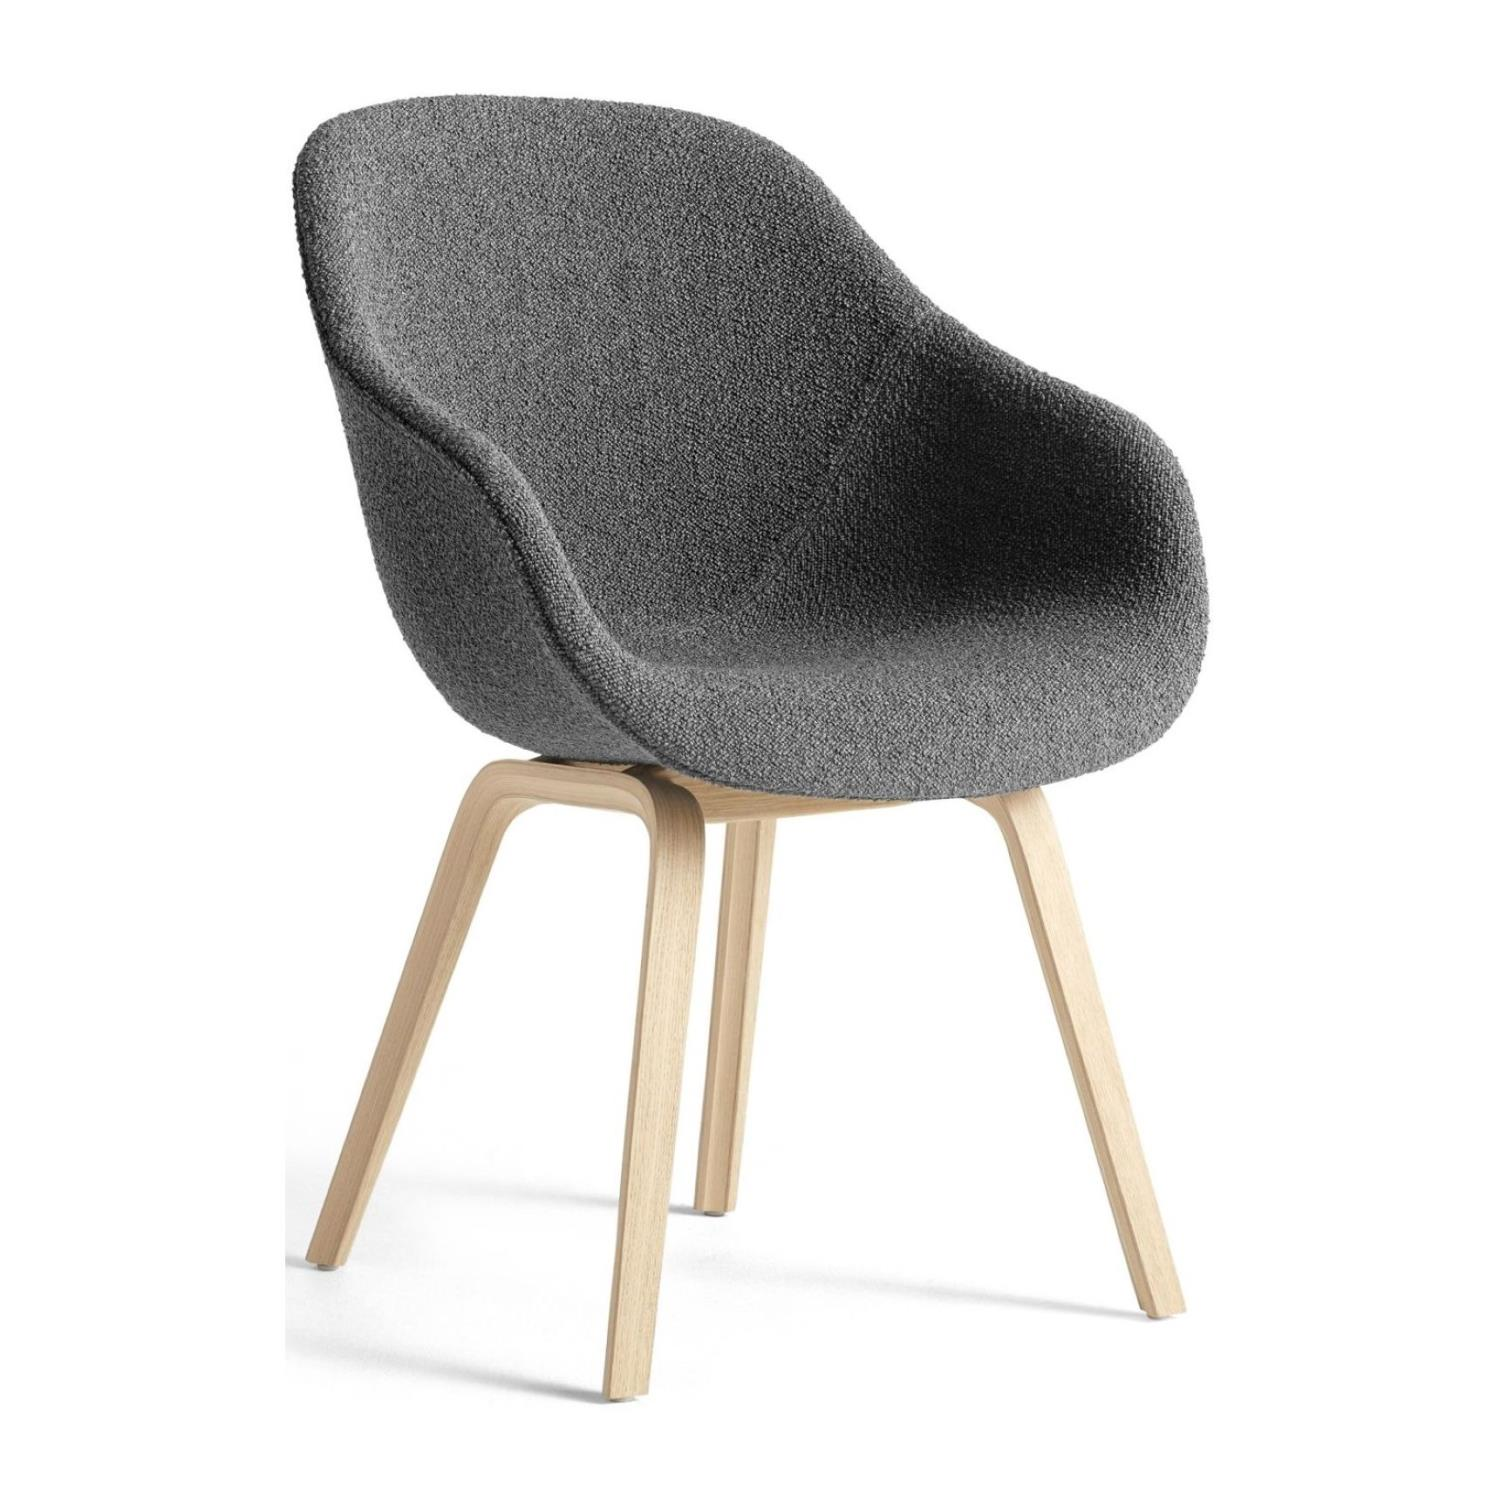 AAC 123 | About A Chair